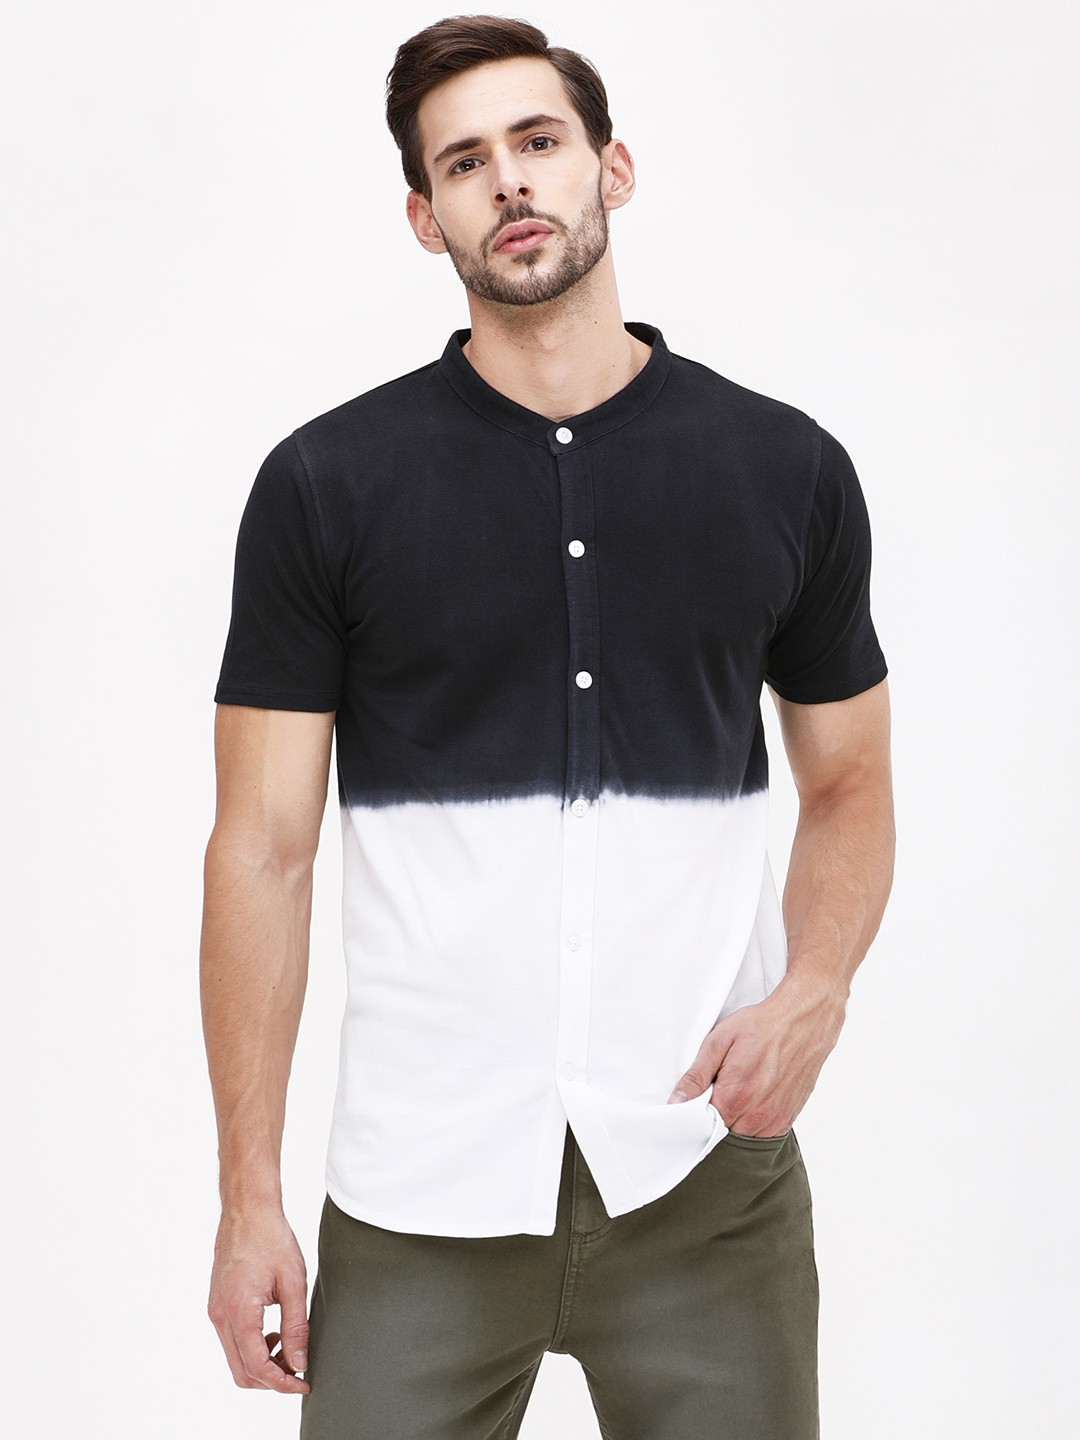 Garcon Black Dip Dye Grandad Collar Knitted Shirt 1